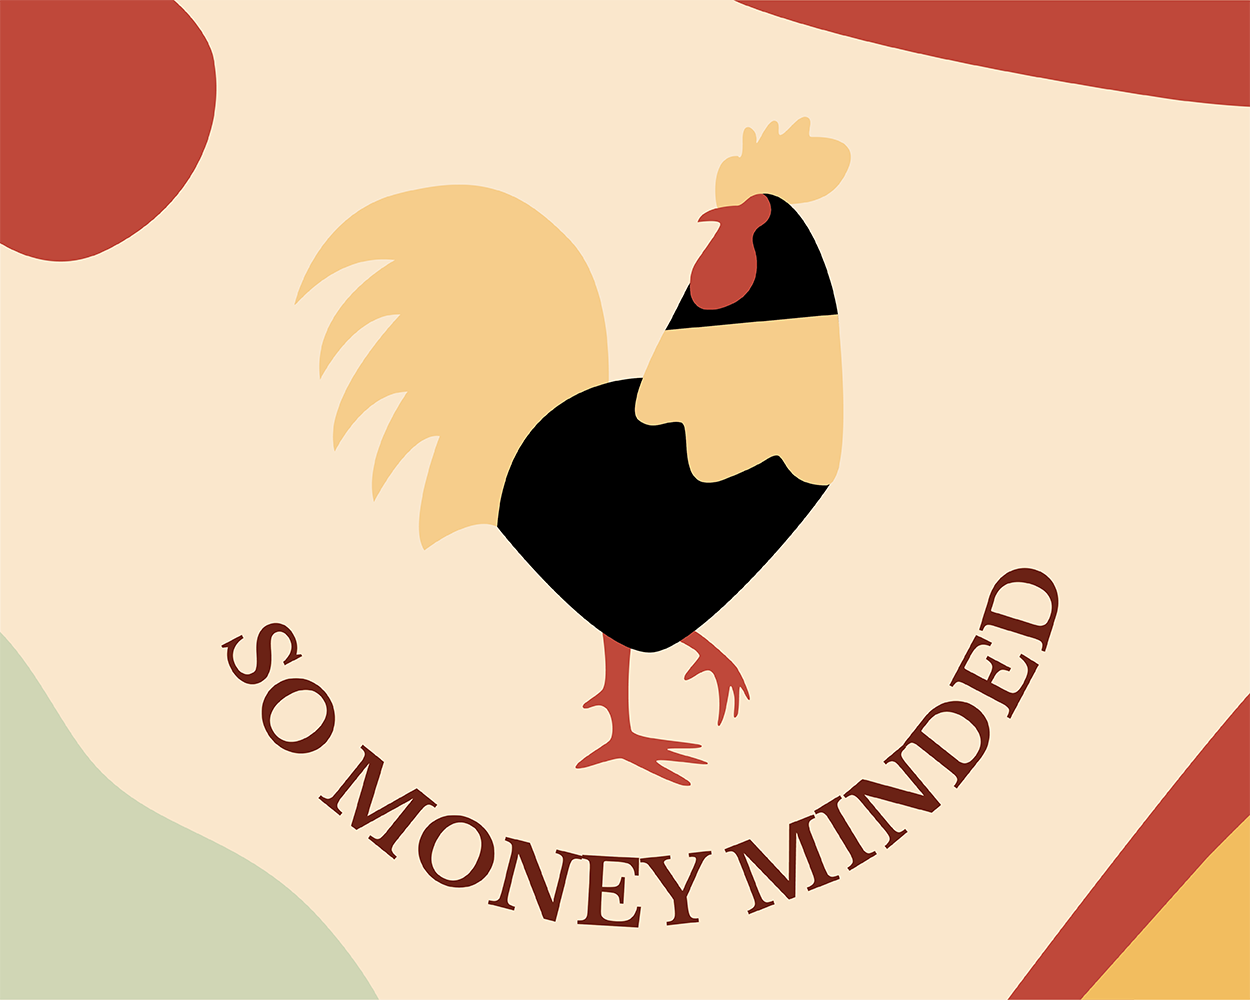 Welcome to So Money Minded!